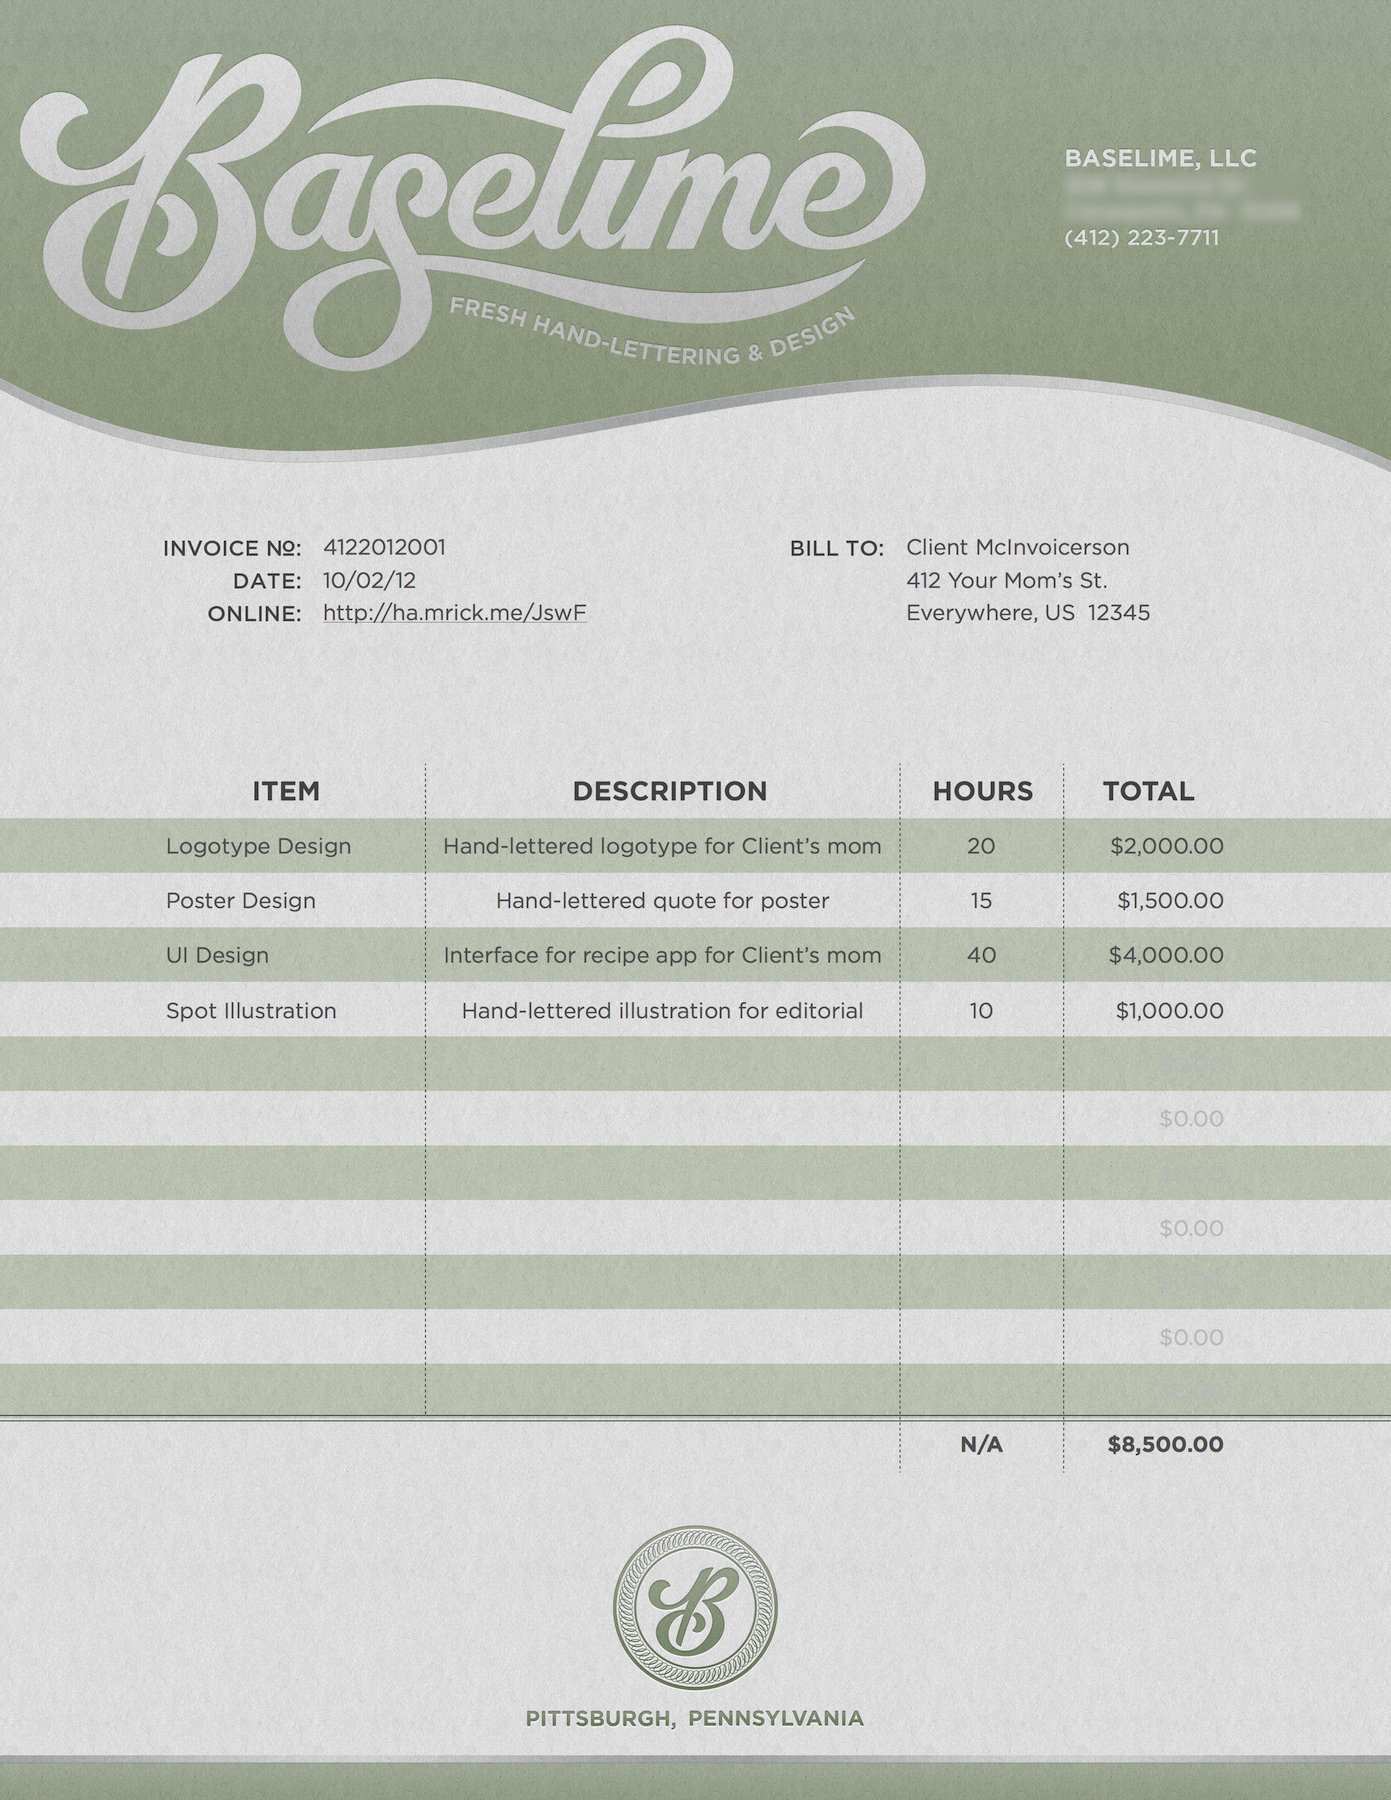 Graphic Design Invoice Template Free Inspirational [download] Freelance Graphic Designer Invoice Template